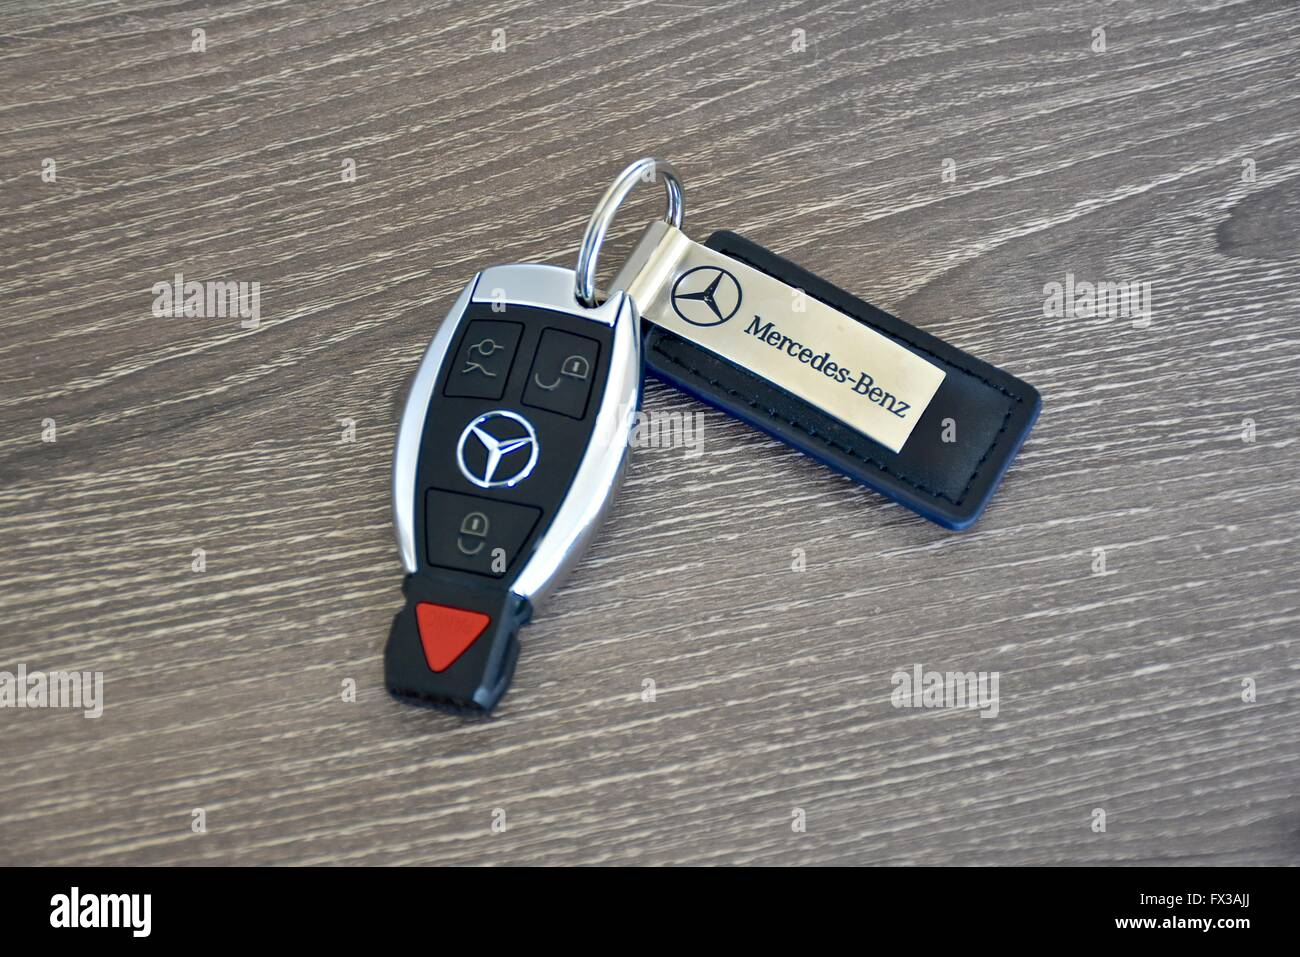 A Mercedes Benz Key Fob Laying On A Wood Surface